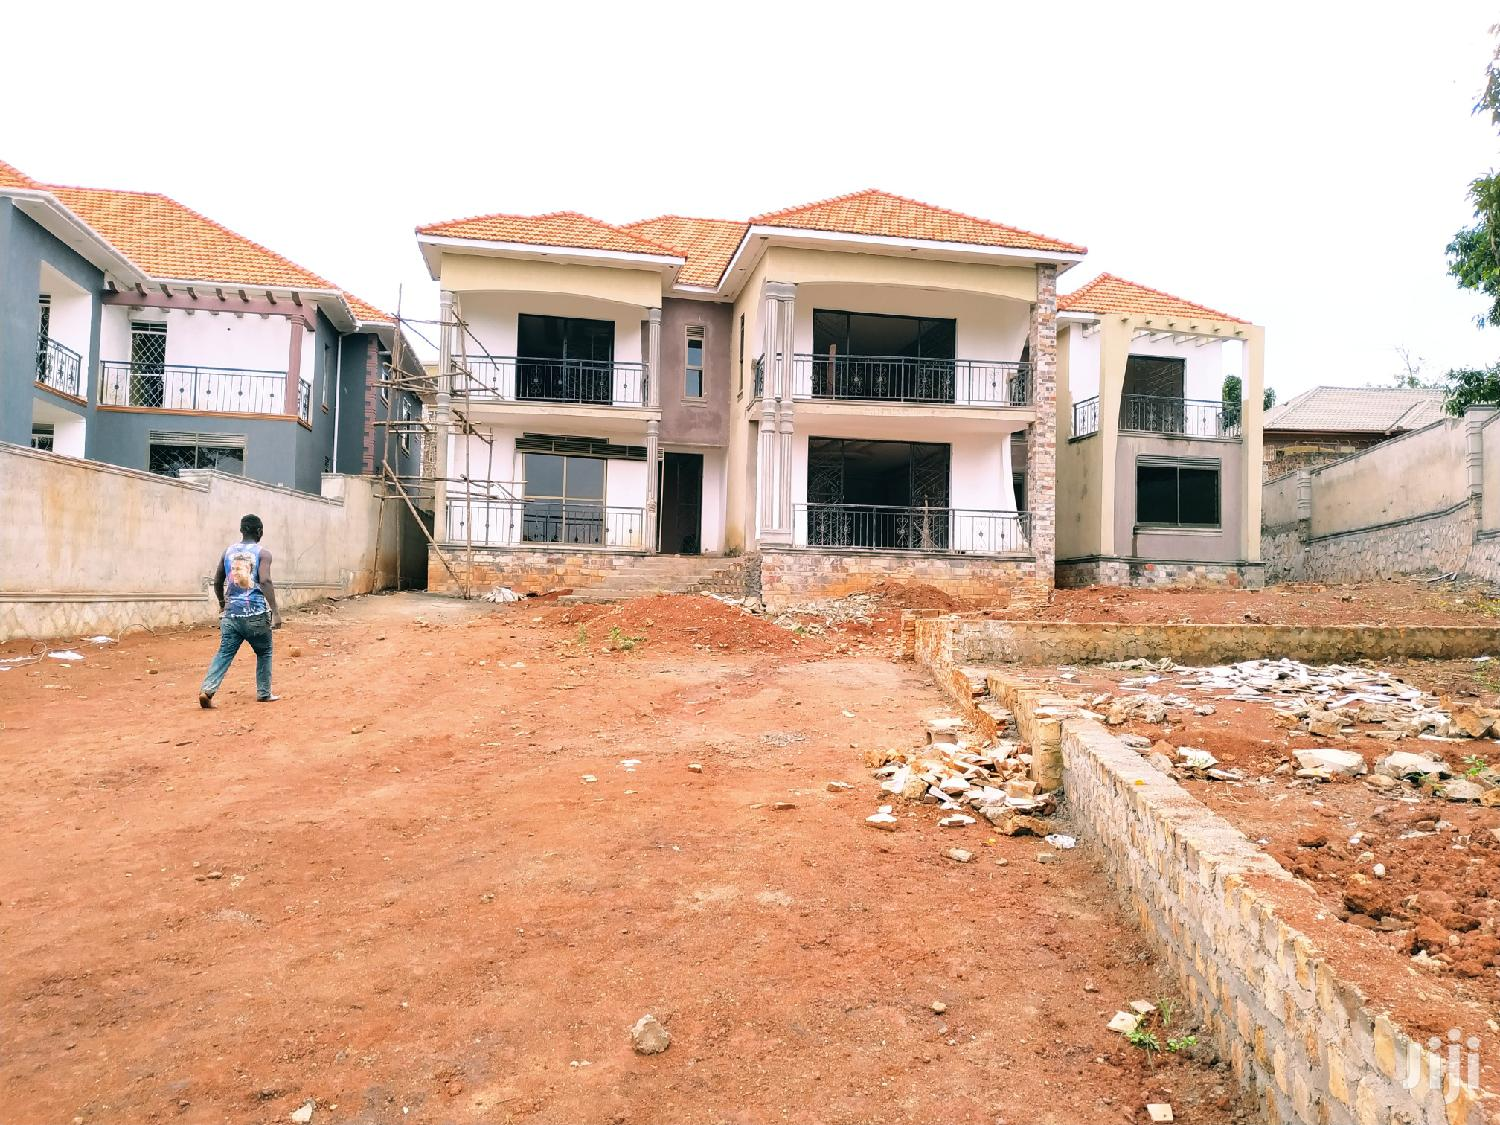 Classic Home for Sale in Kiwatule Has 7 Bedrooms All Self Contained | Houses & Apartments For Sale for sale in Kampala, Central Region, Uganda